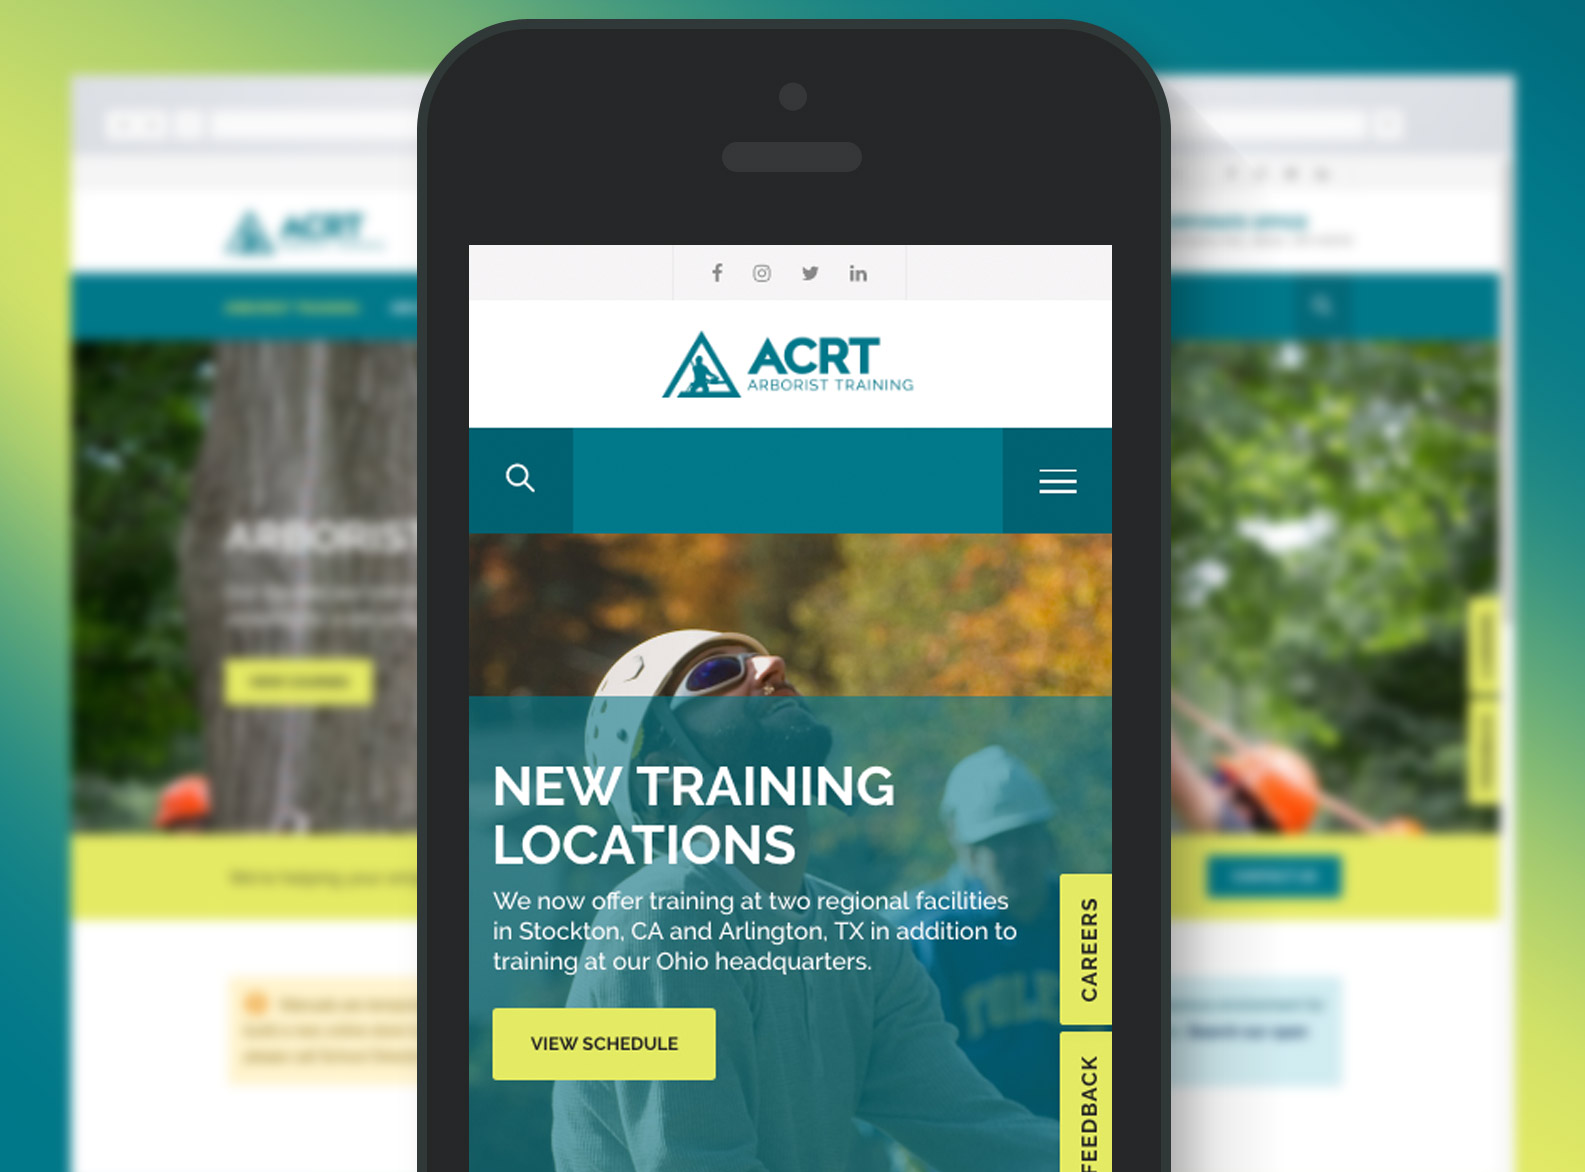 ACRT Arborist Training Website Mobile